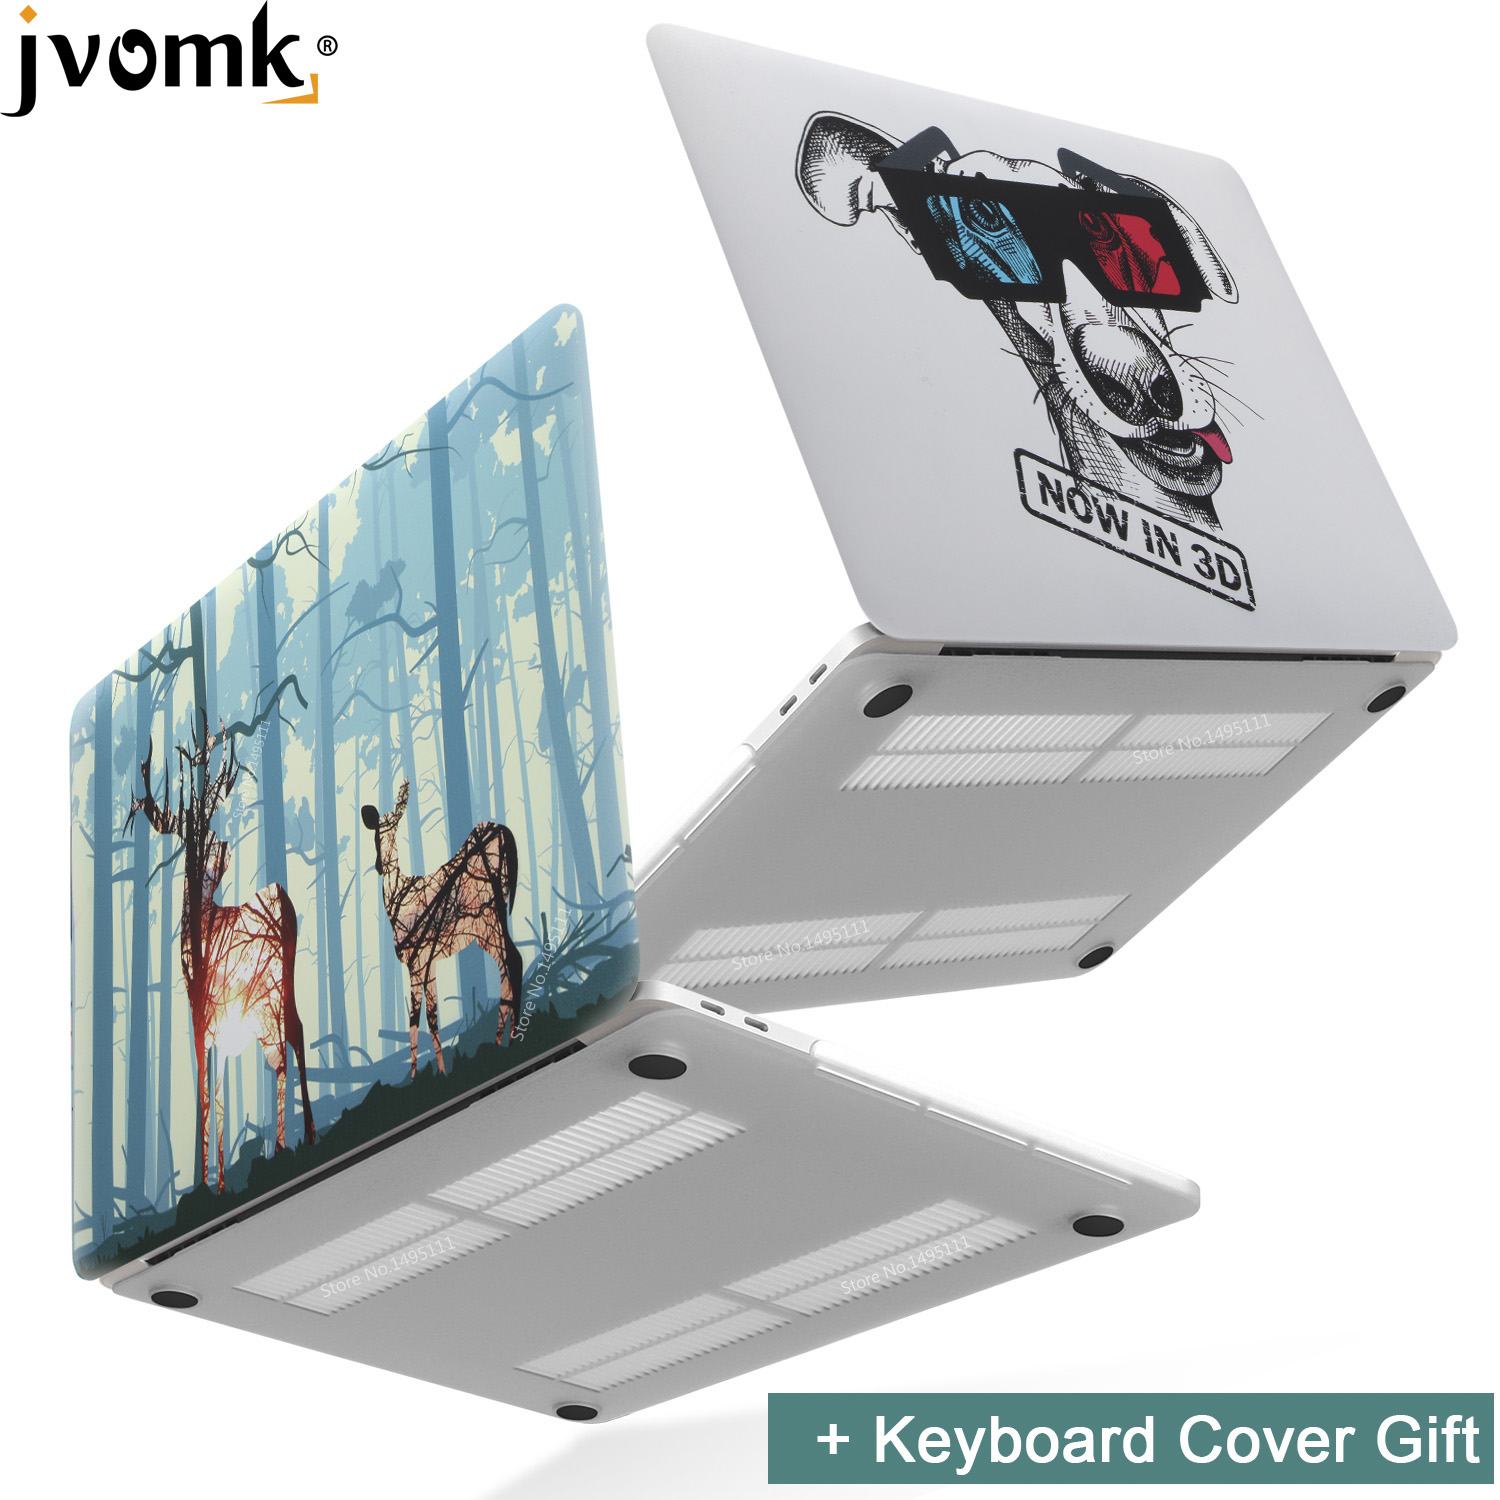 2019 New Print Animal Laptop Case For MacBook Air Pro Retina 11 12 13 15 Inch With Touch Bar + Keyboard Cover